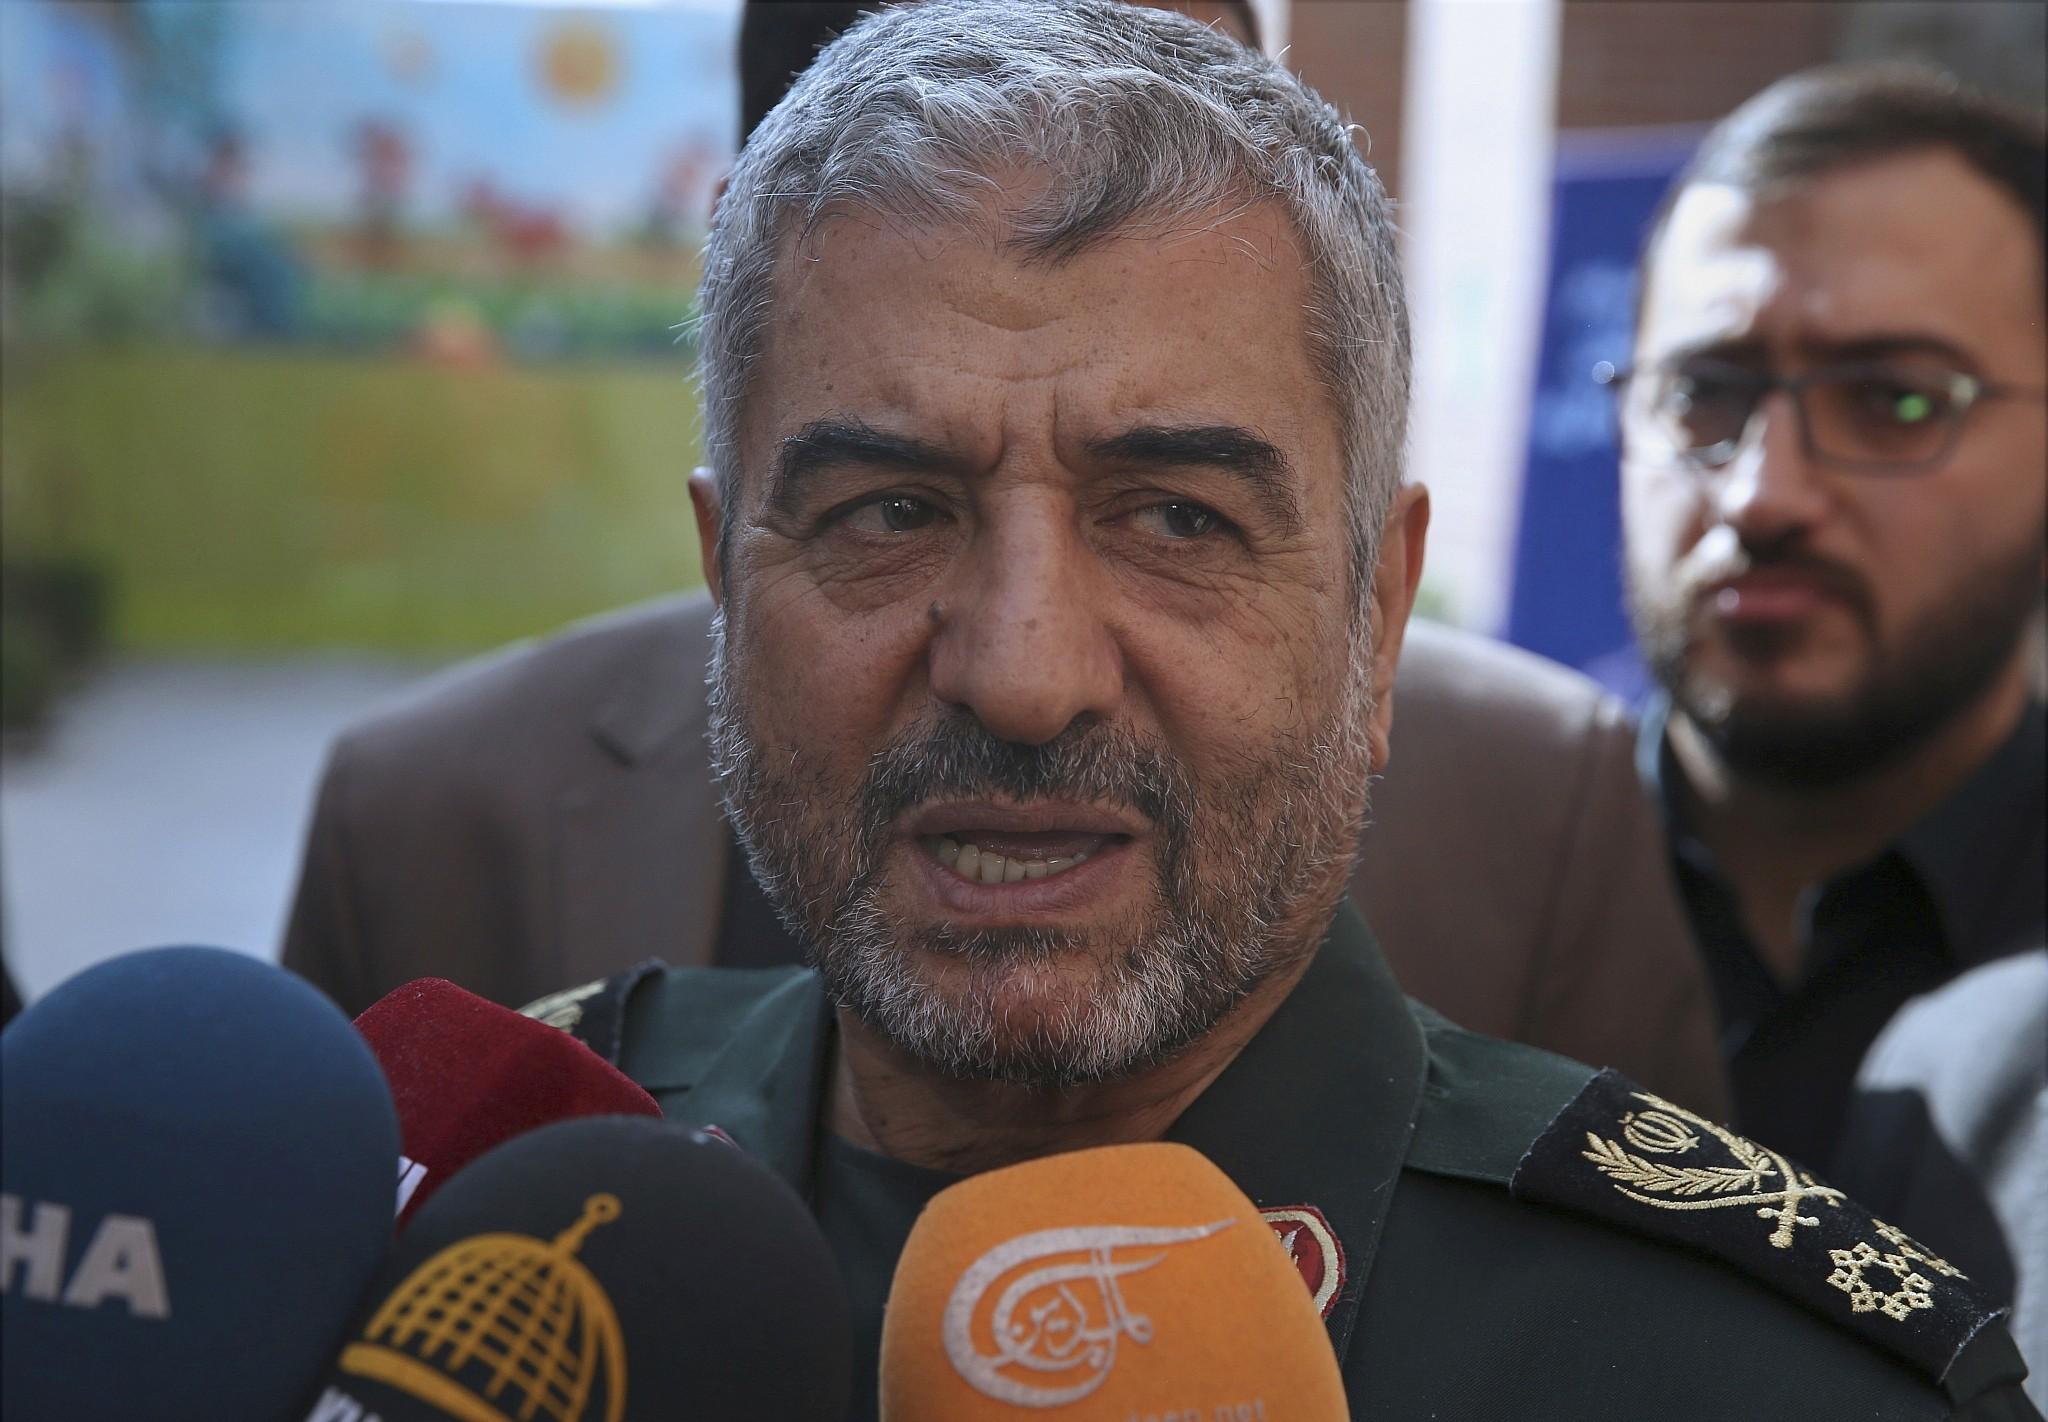 The head of Iran's paramilitary Revolutionary Guard General Mohammad Ali Jafari speaks to journalists after his speech at a conference called